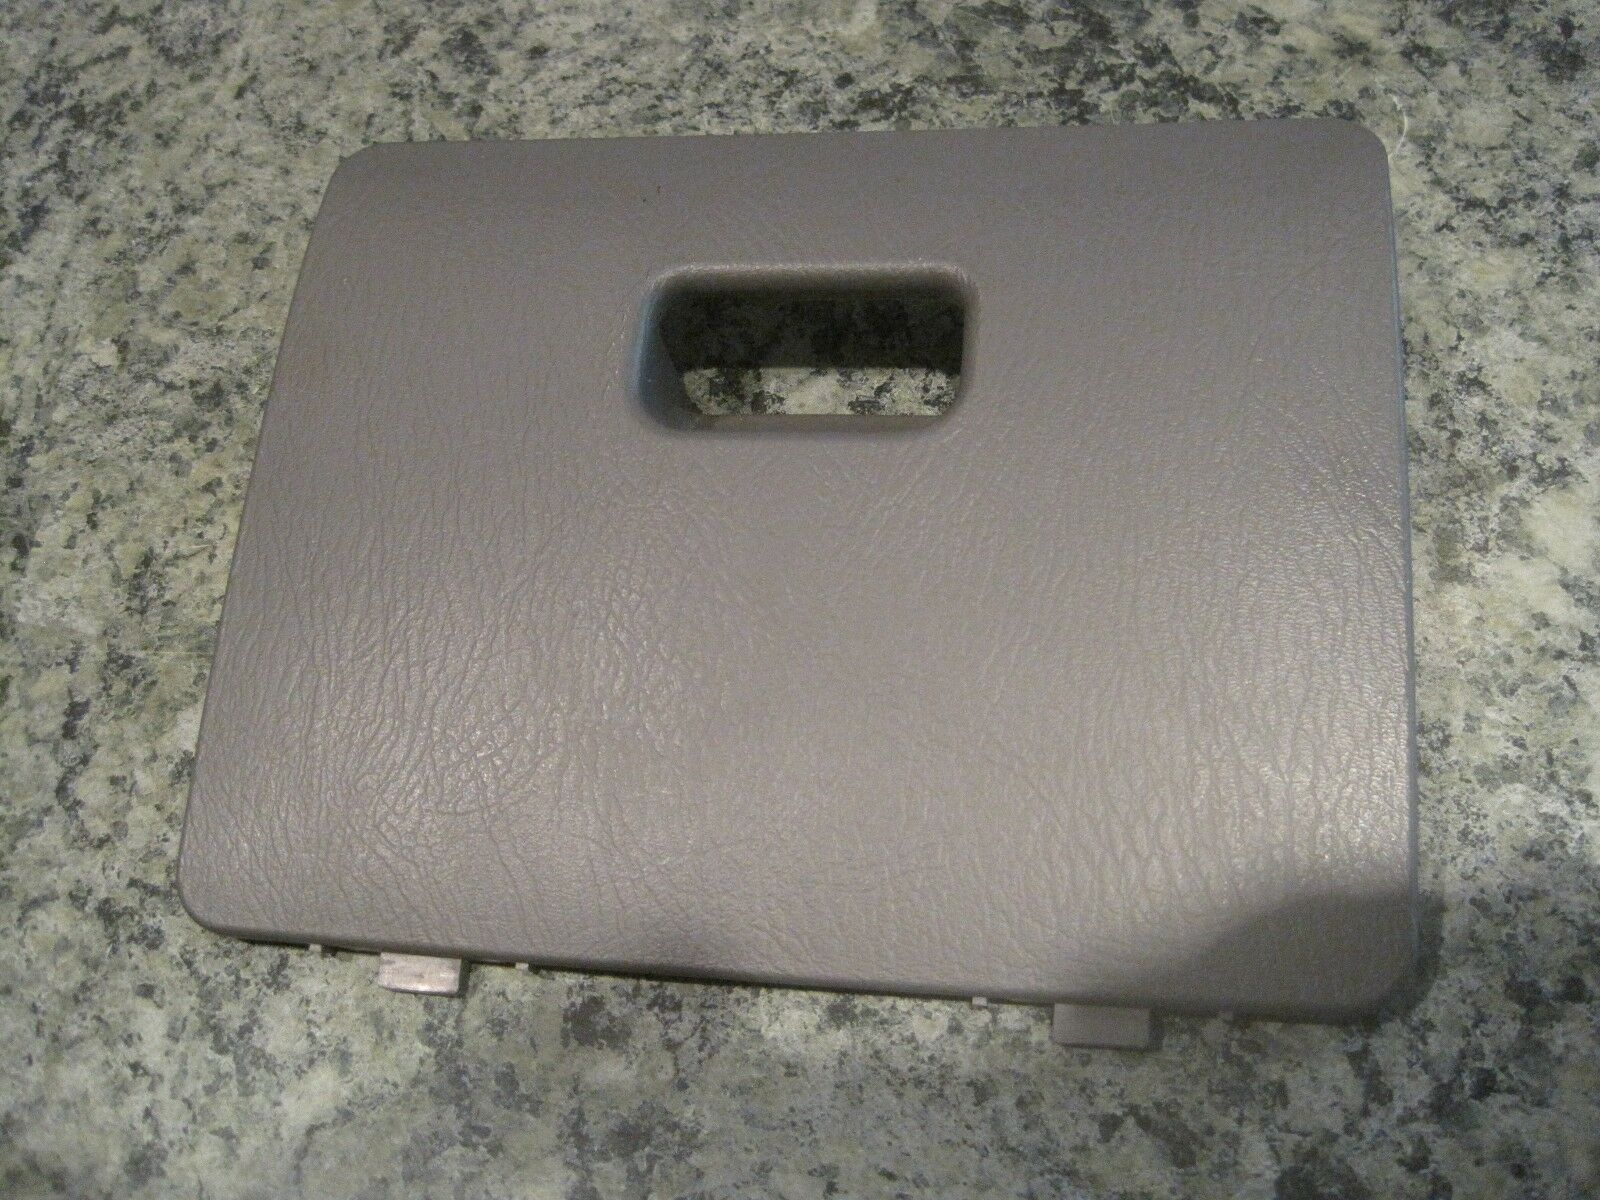 Used 2001 Nissan Xterra Dash Parts For Sale 01 Fuse Box Gray Grey Panel Cover 68965